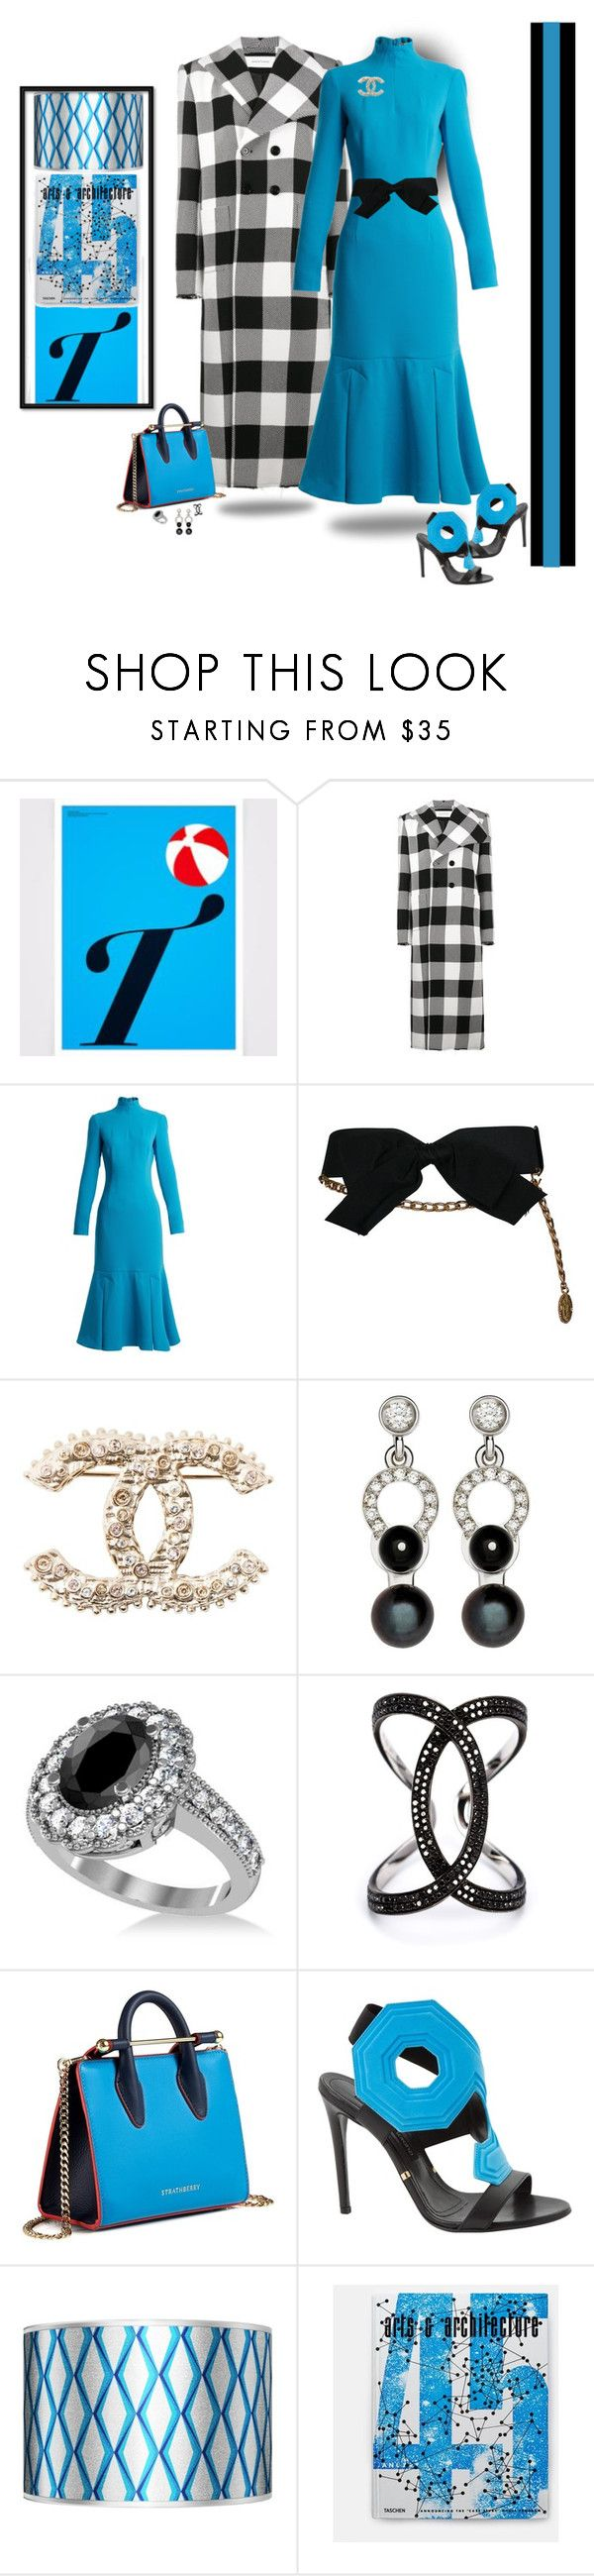 """Favorite color combination"" by deborah-518 ❤ liked on Polyvore featuring Marques'Almeida, Emilia Wickstead, Chanel, Nathalie Jean, Allurez, Kristin Hanson, Strathberry, Gianmarco Lorenzi and Giclee Gallery"